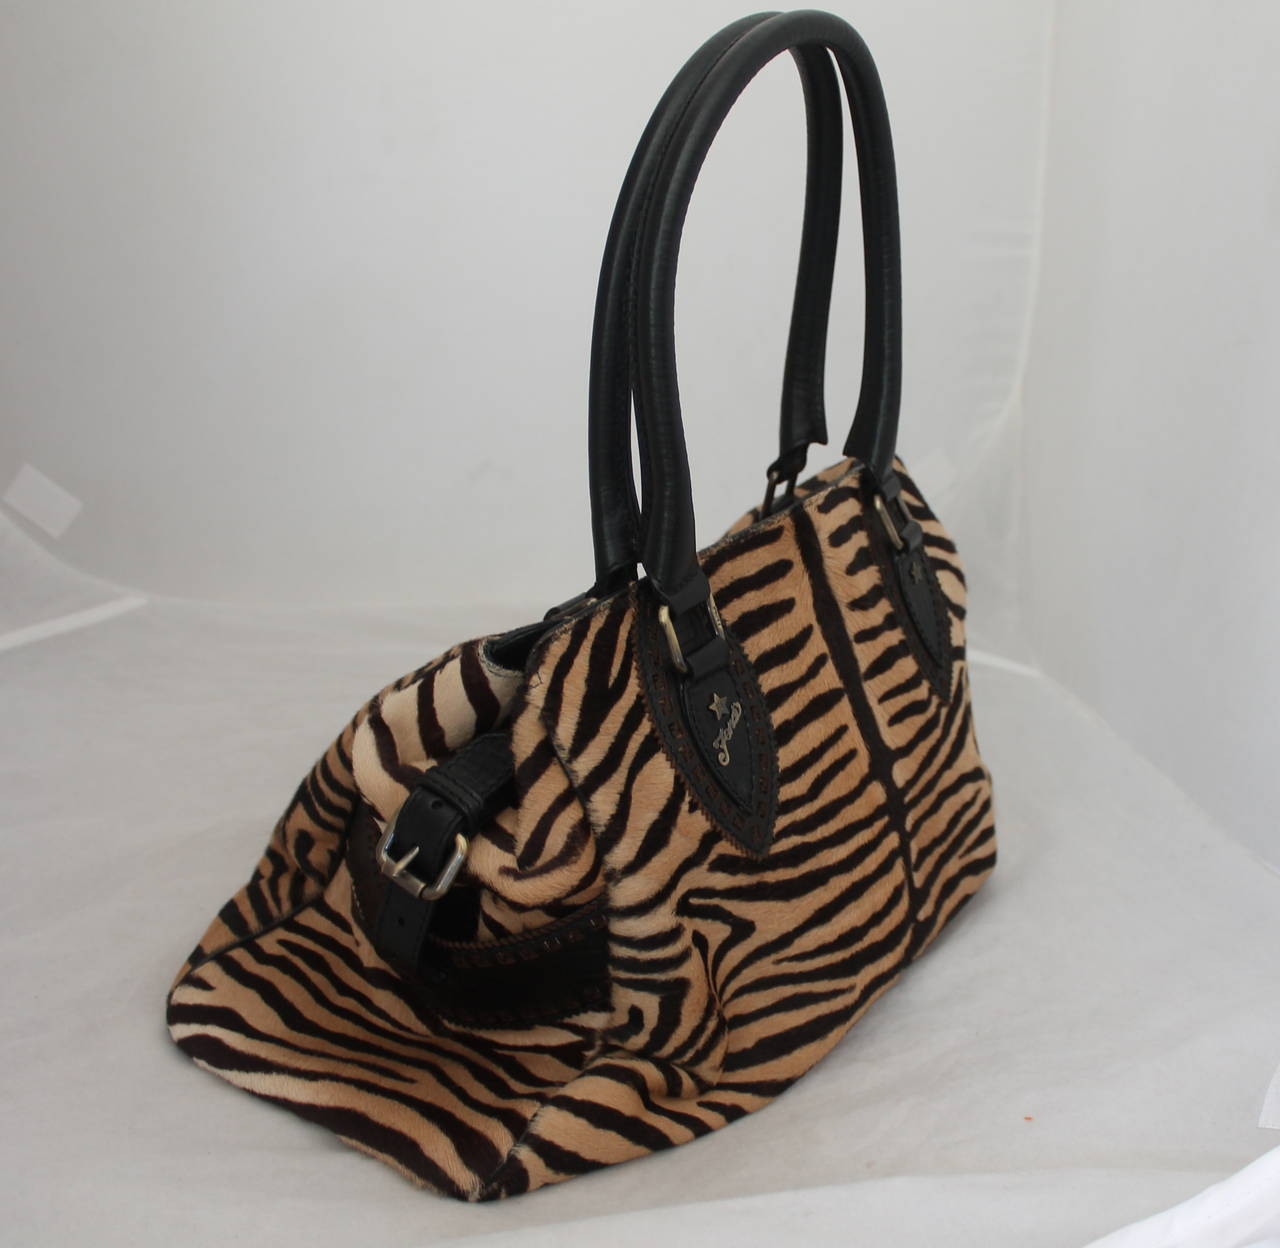 21b1ad02a7e4 ... shop fendi black beige zebra printed pony hair handbag in excellent  condition for sale in palm